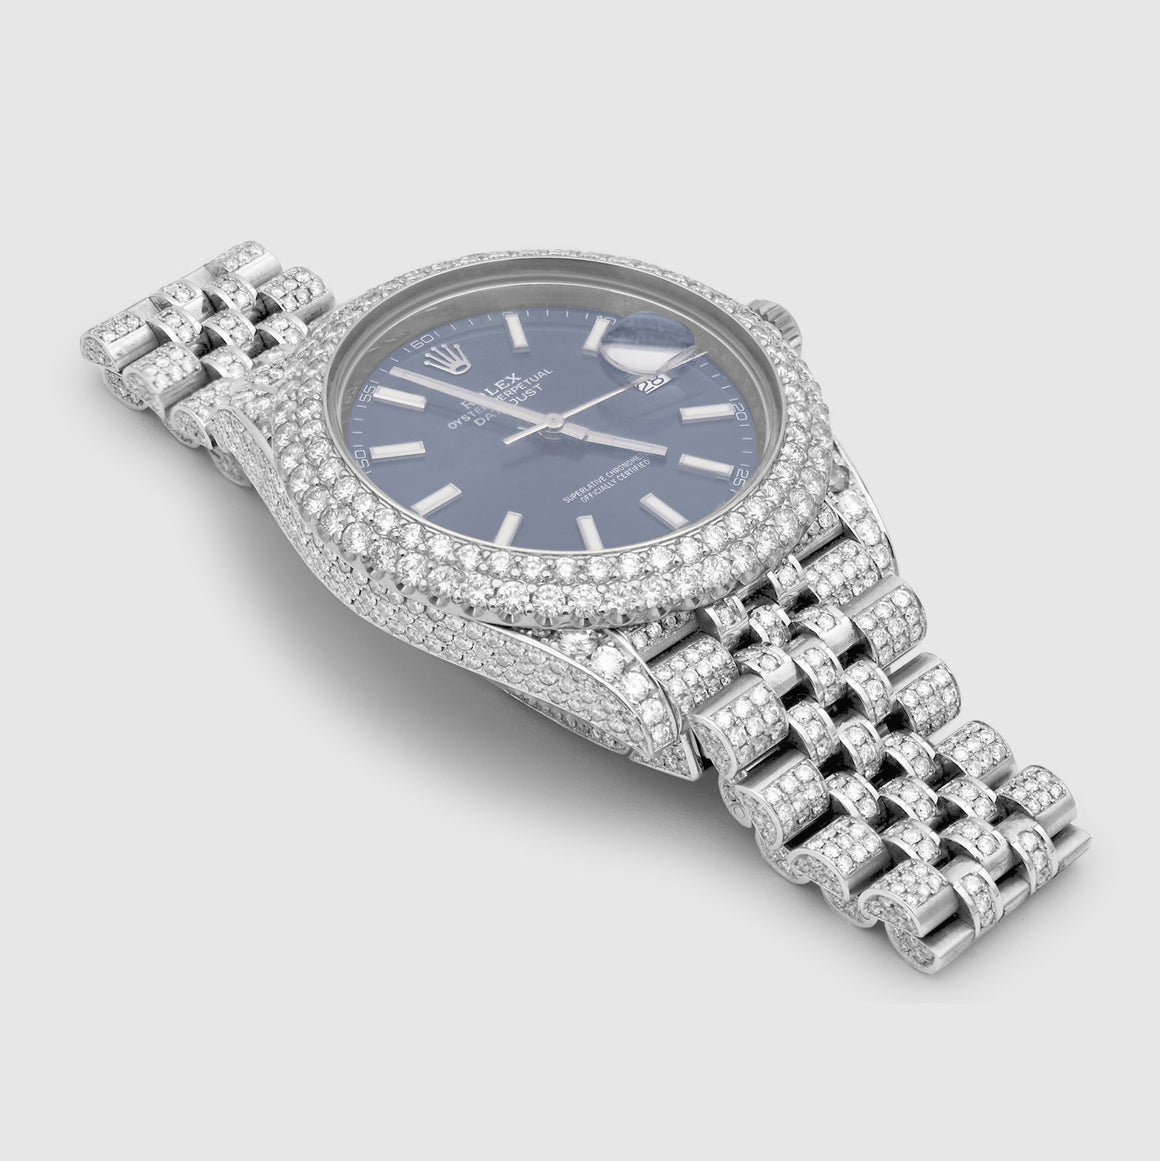 Iced Out Rolex DateJust 41mm Stainless Steel Blue Dial Watch